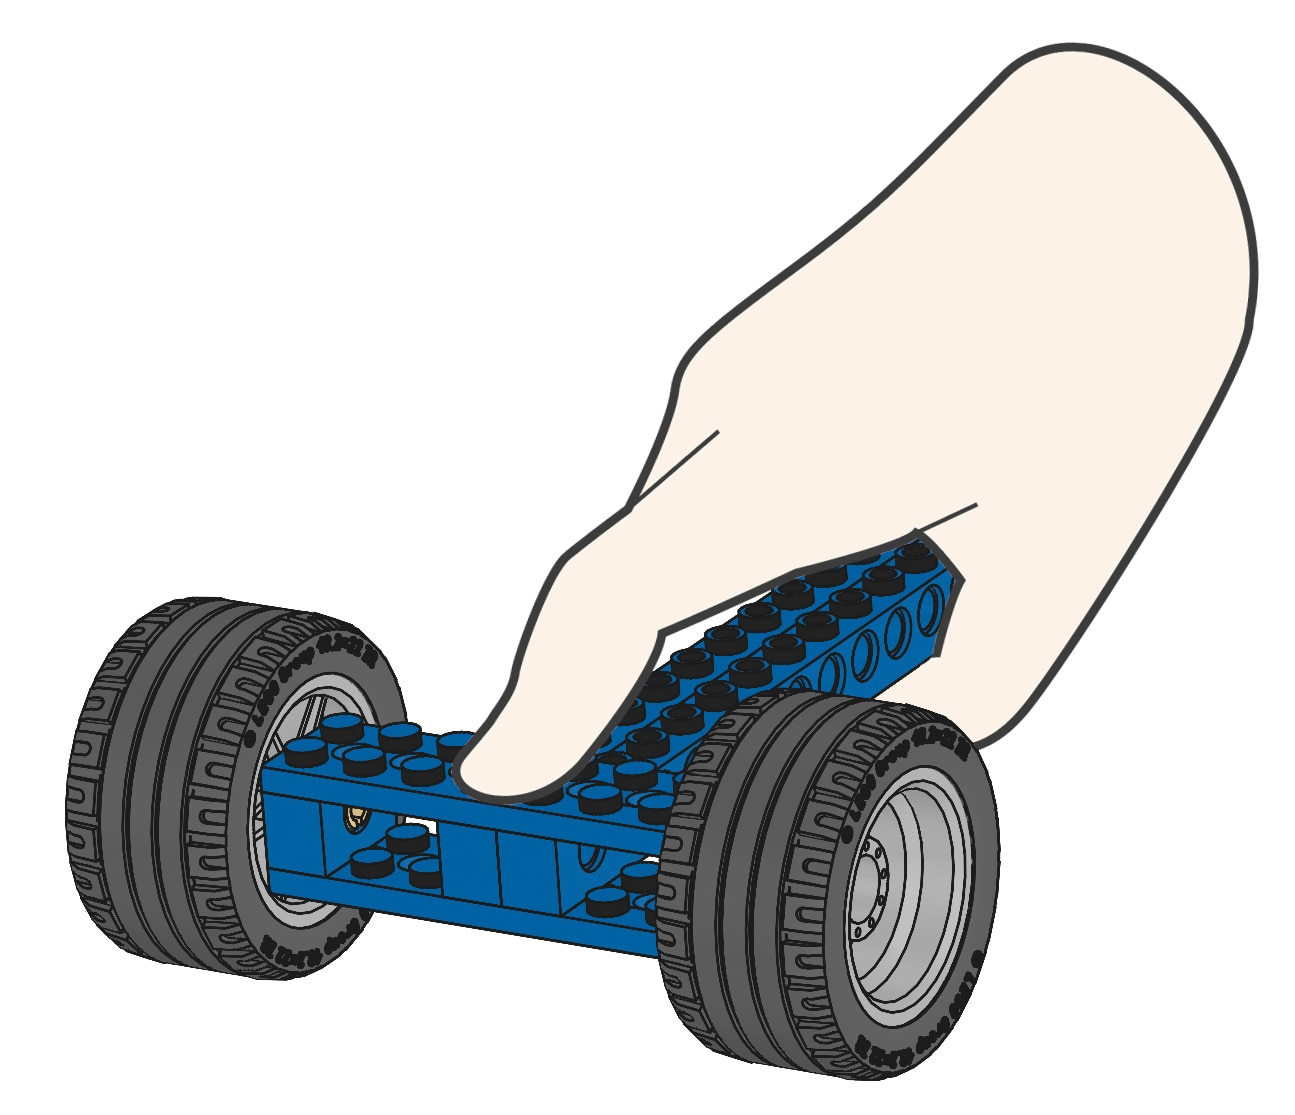 Wheel & Axle - Simple And Powered Machines - Lesson Plans